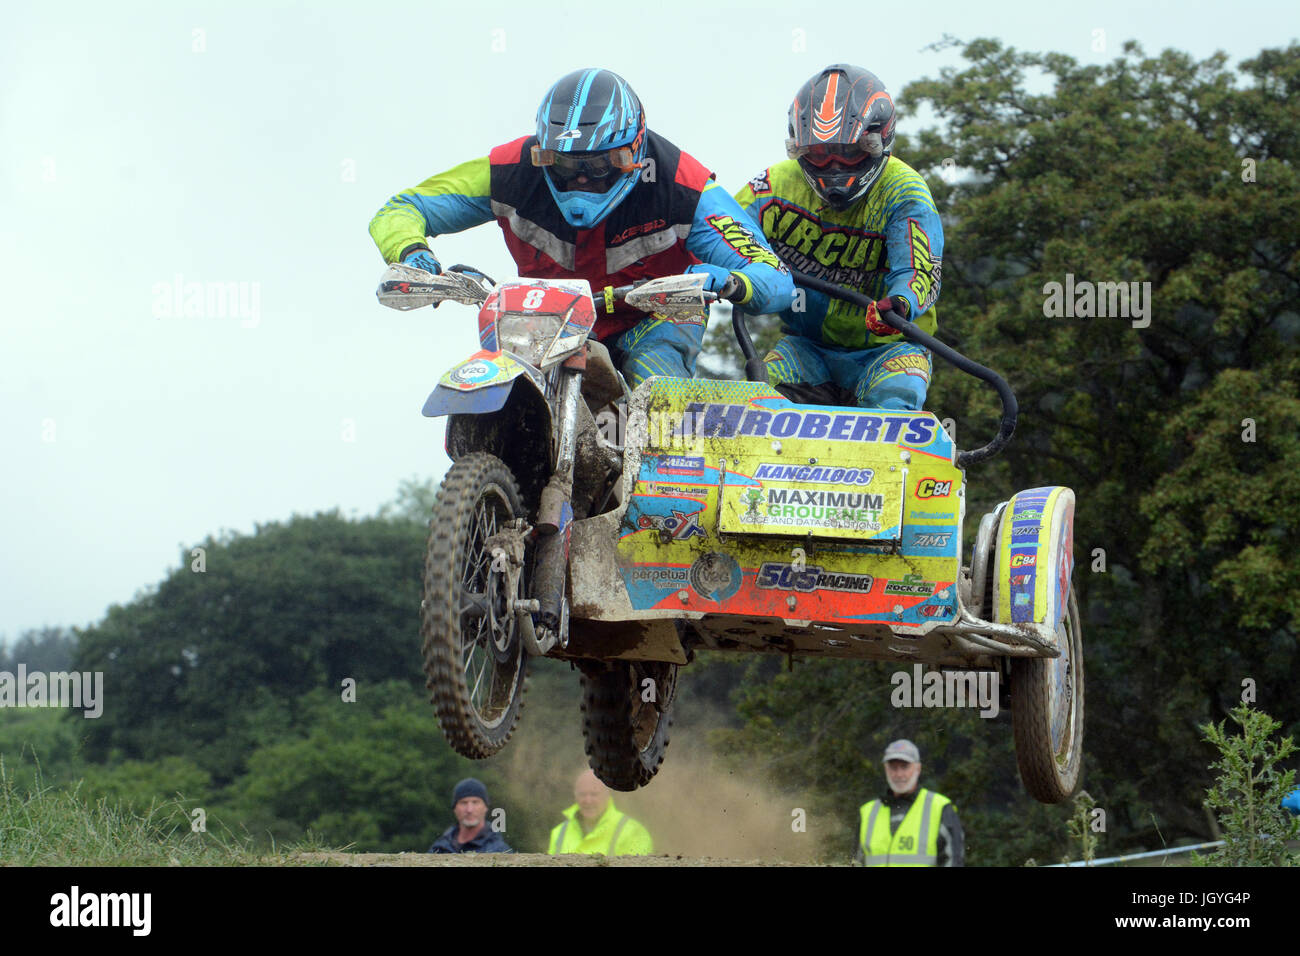 John Aled Evans and Simon Morgan compete in the sidecar championship class at the Welsh 2 Day Enduro in Llandrindod - Stock Image